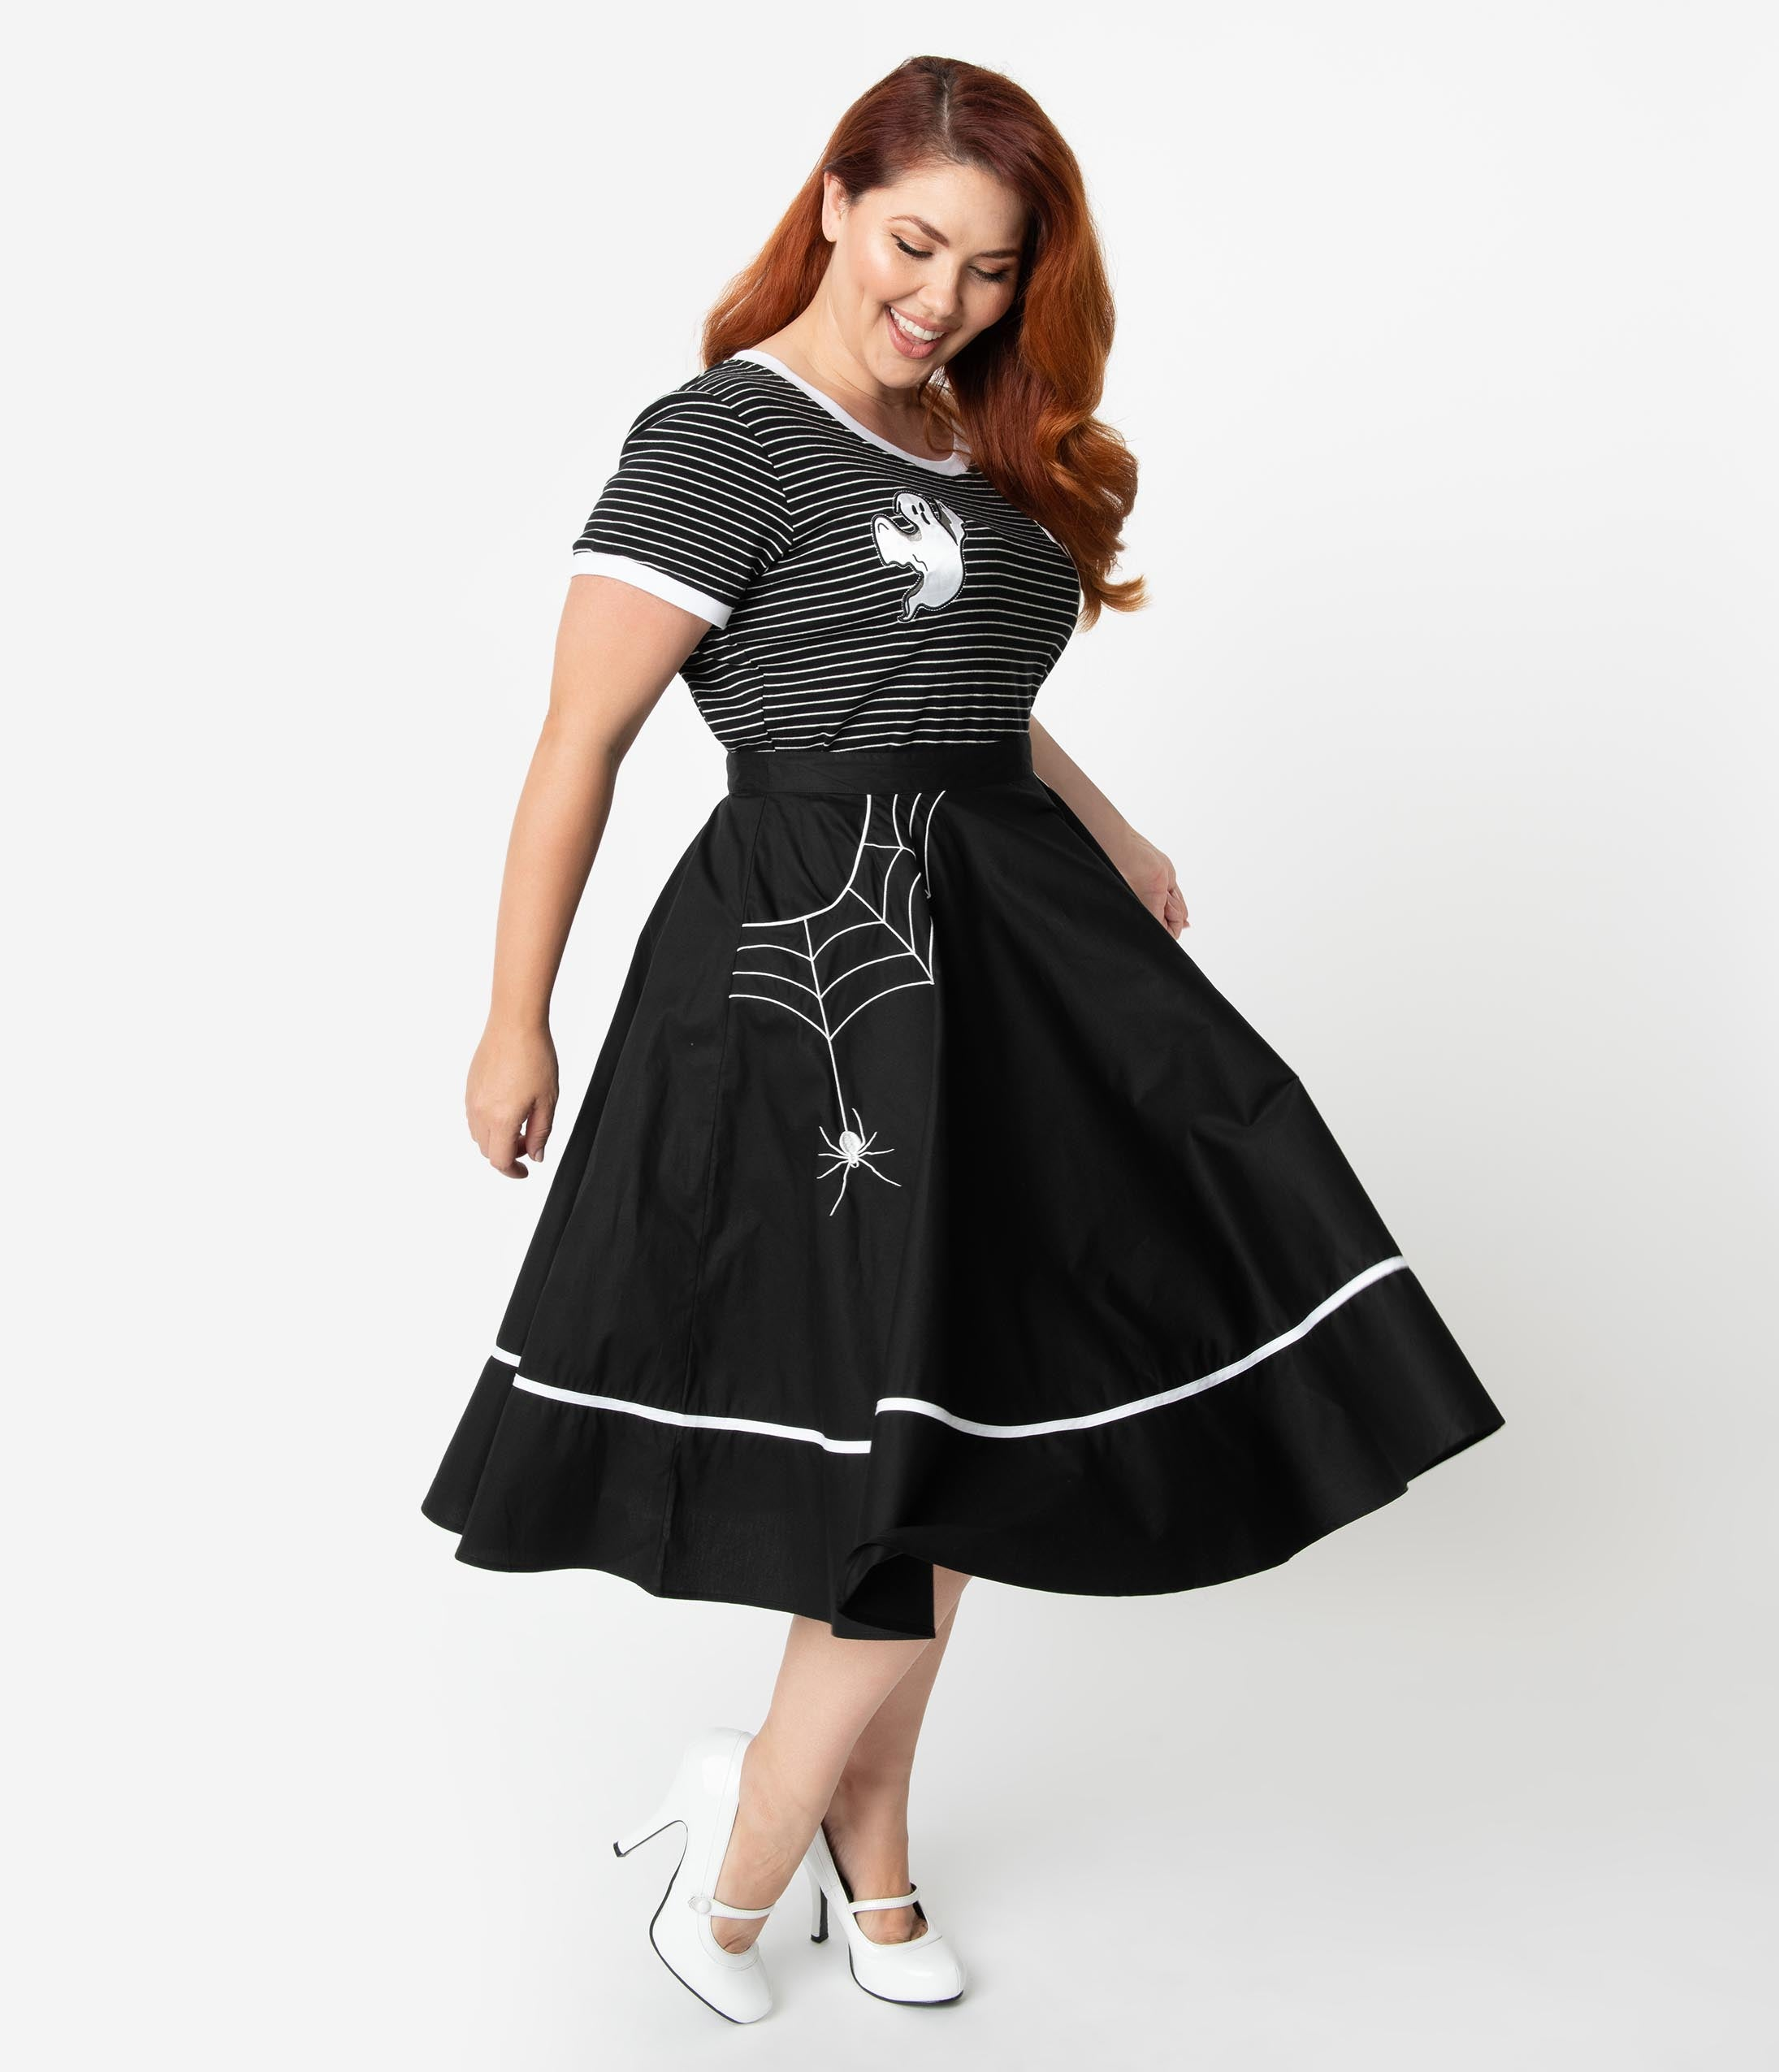 1950s Swing Skirt, Poodle Skirt, Pencil Skirts Hell Bunny Plus Size Black Cotton Miss Muffet High Waist Swing Skirt $58.00 AT vintagedancer.com